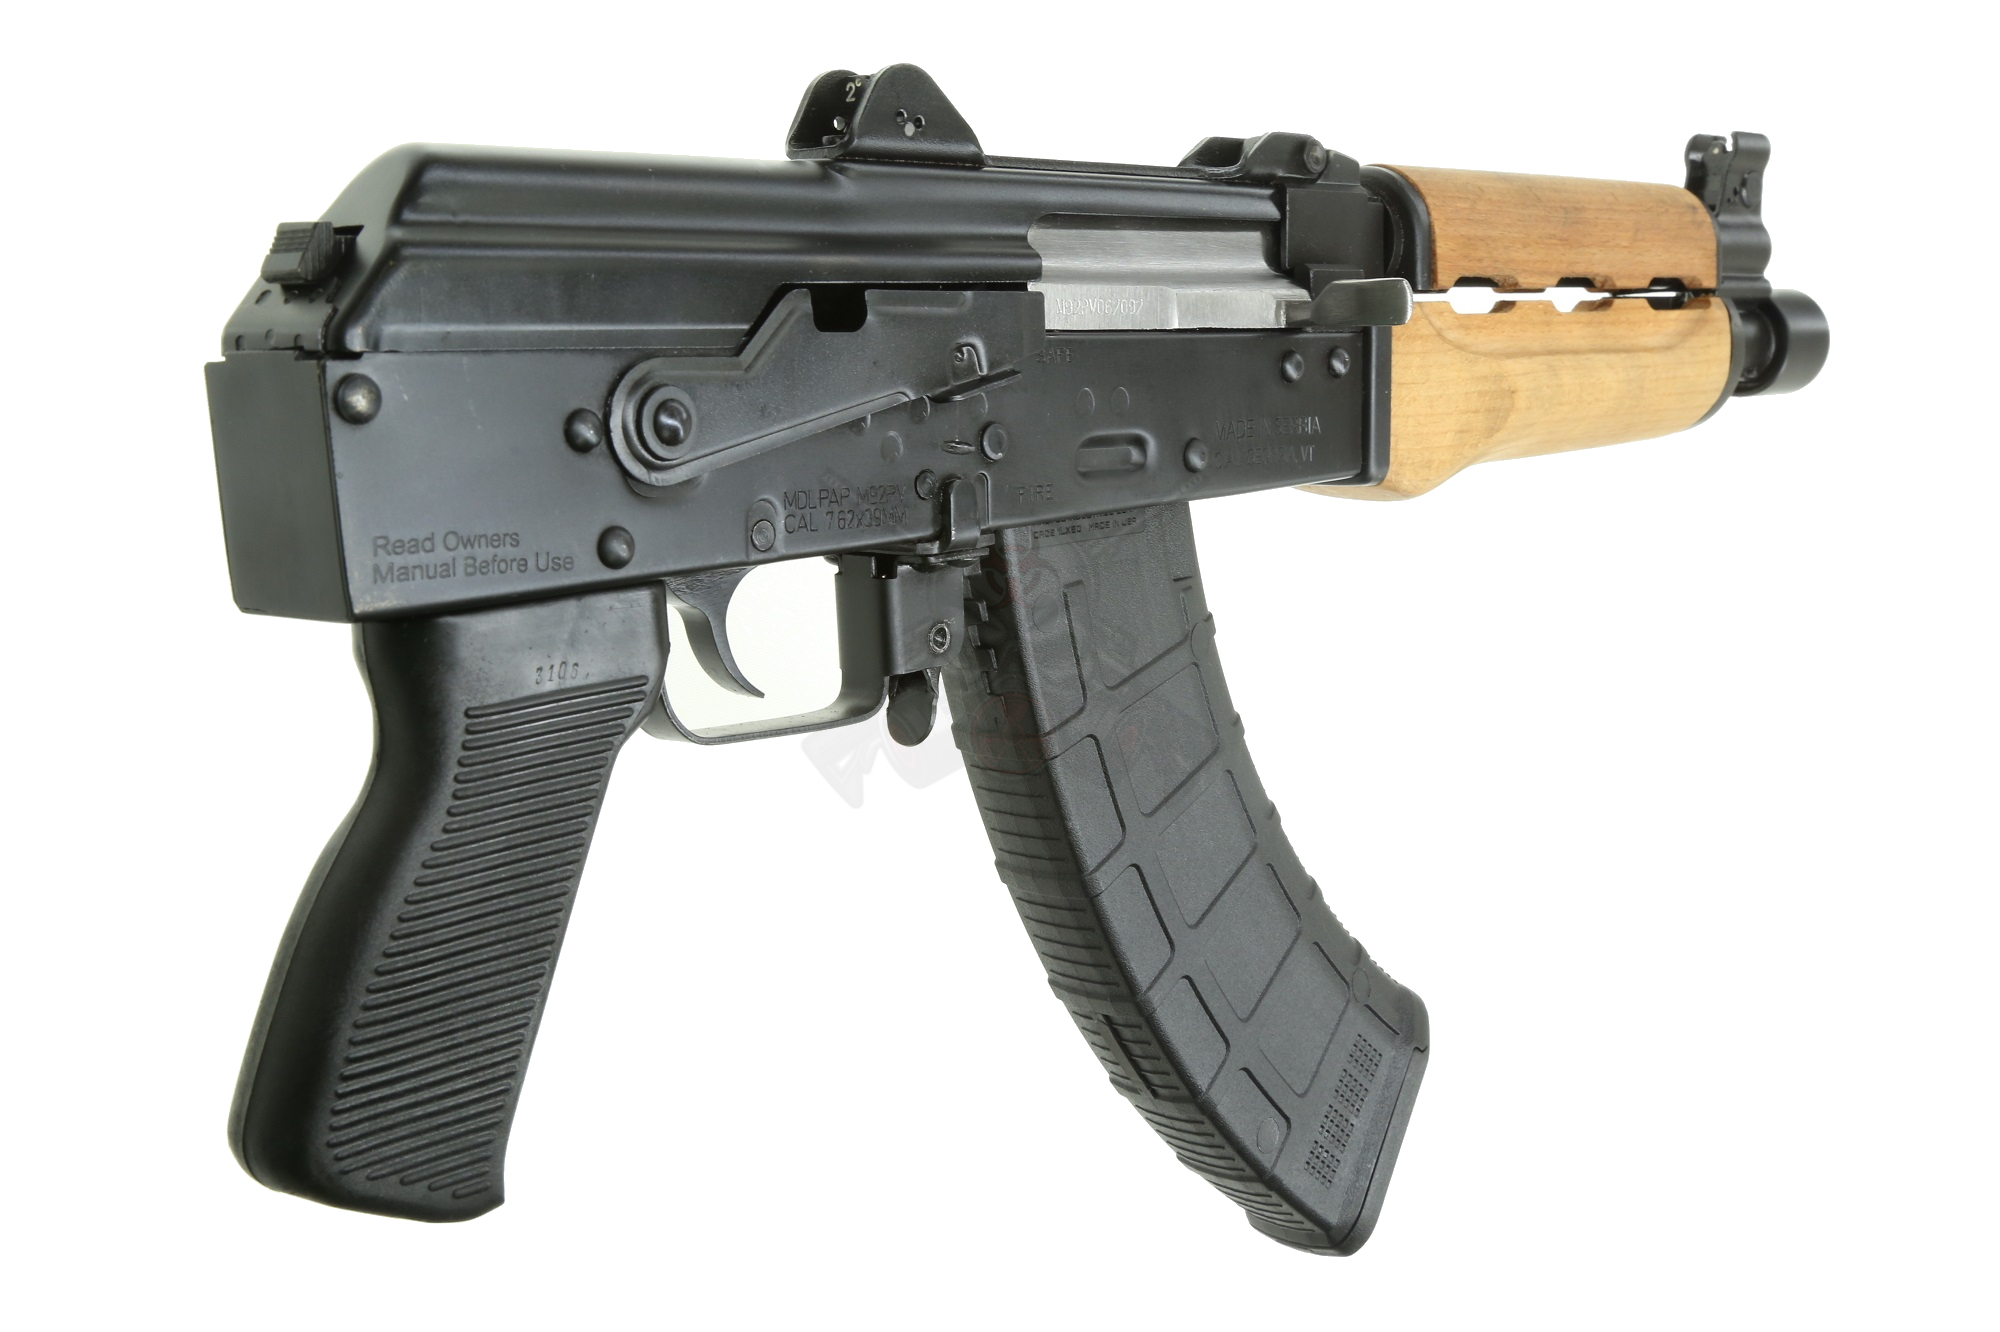 Ak ak 47 for sale by owner - Availability In Stock